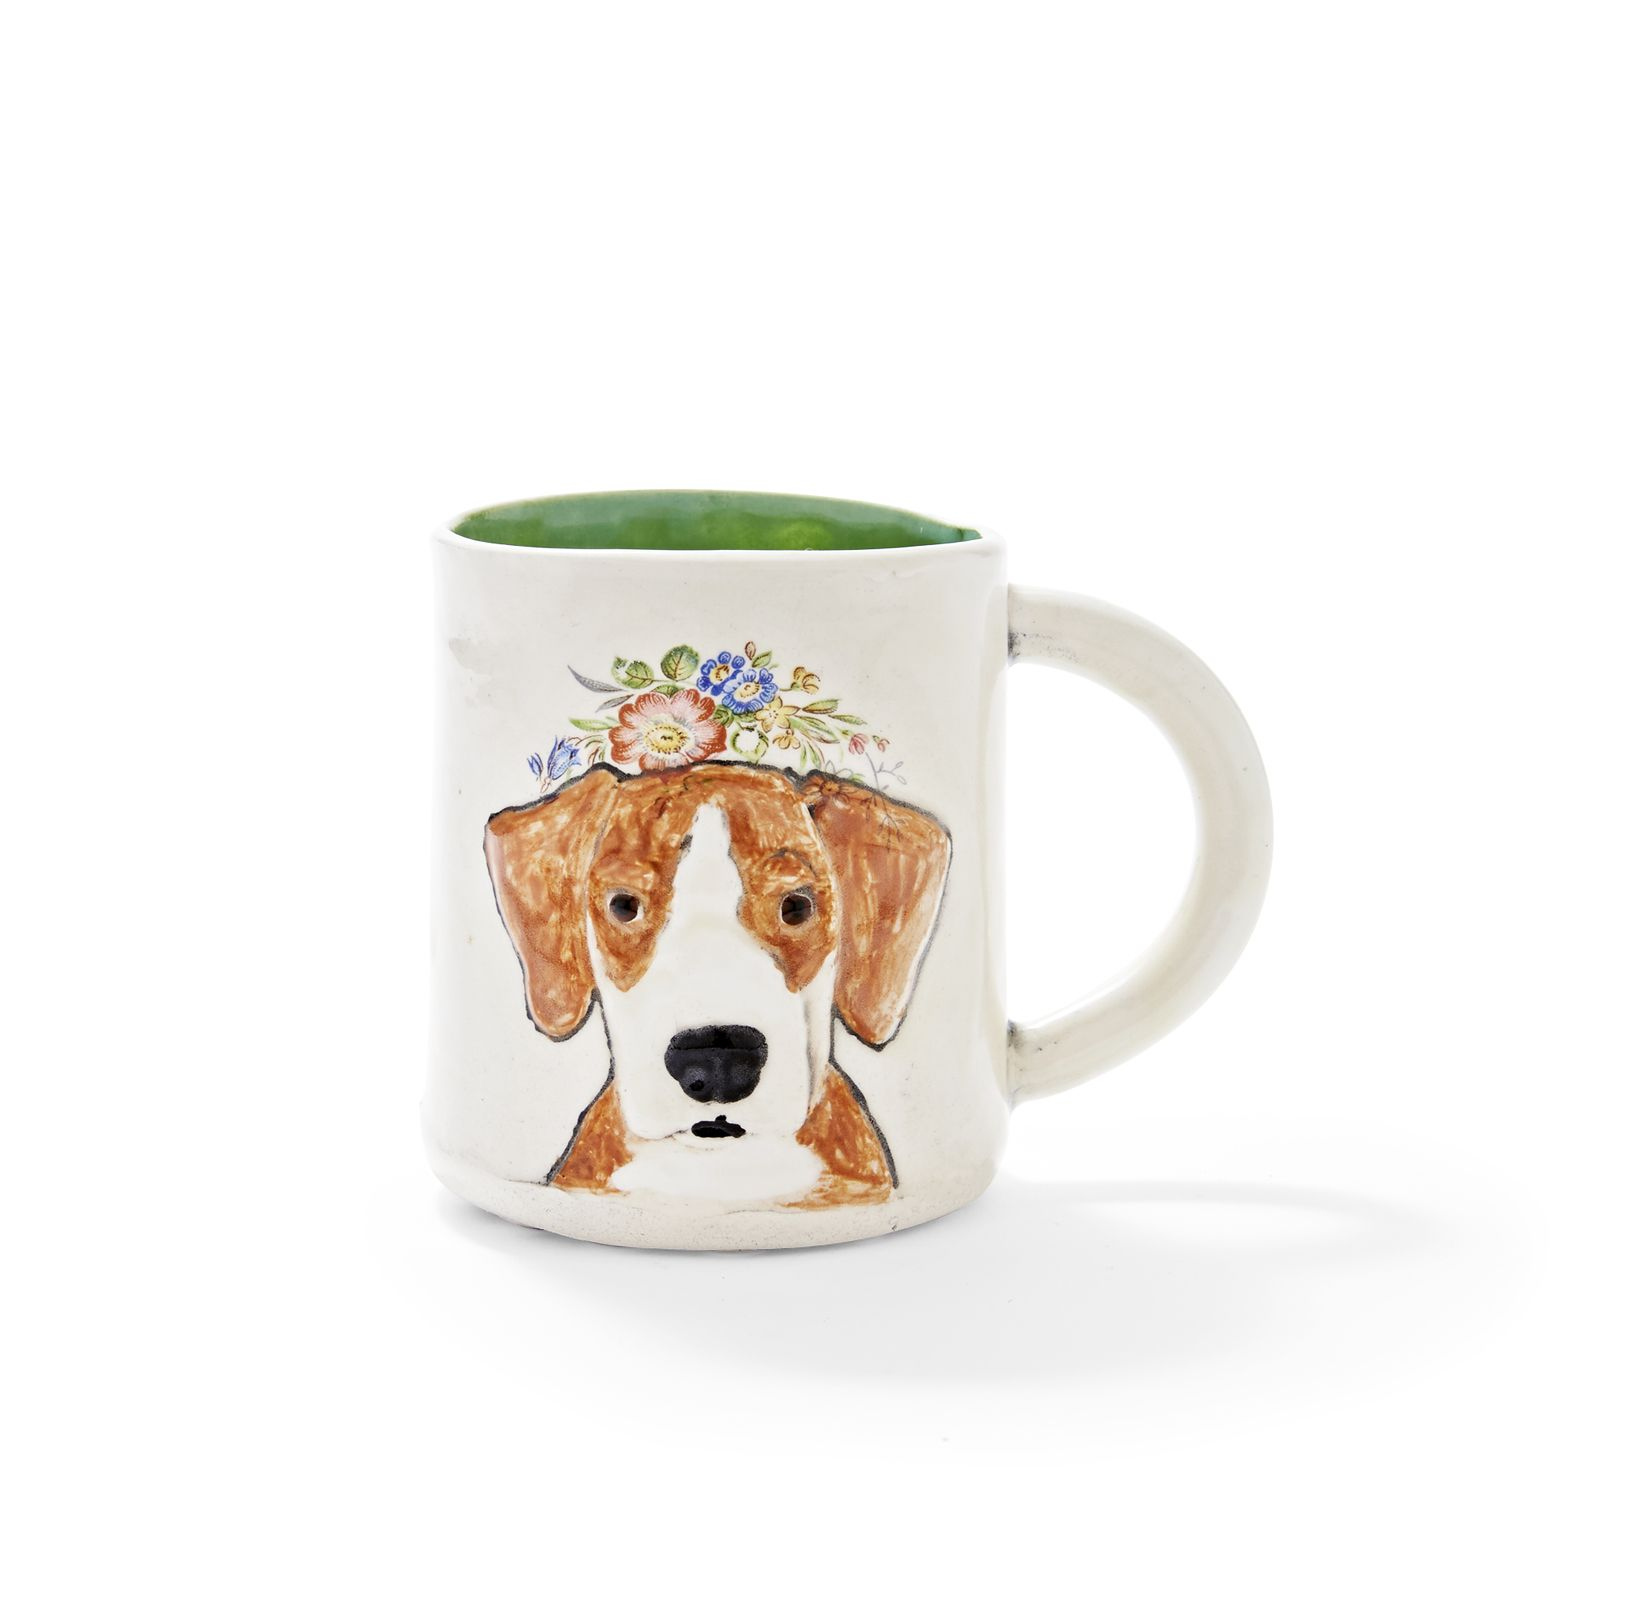 40 Best Gifts for Dog Lovers 2018 - Unique Dog Owner Gift Ideas